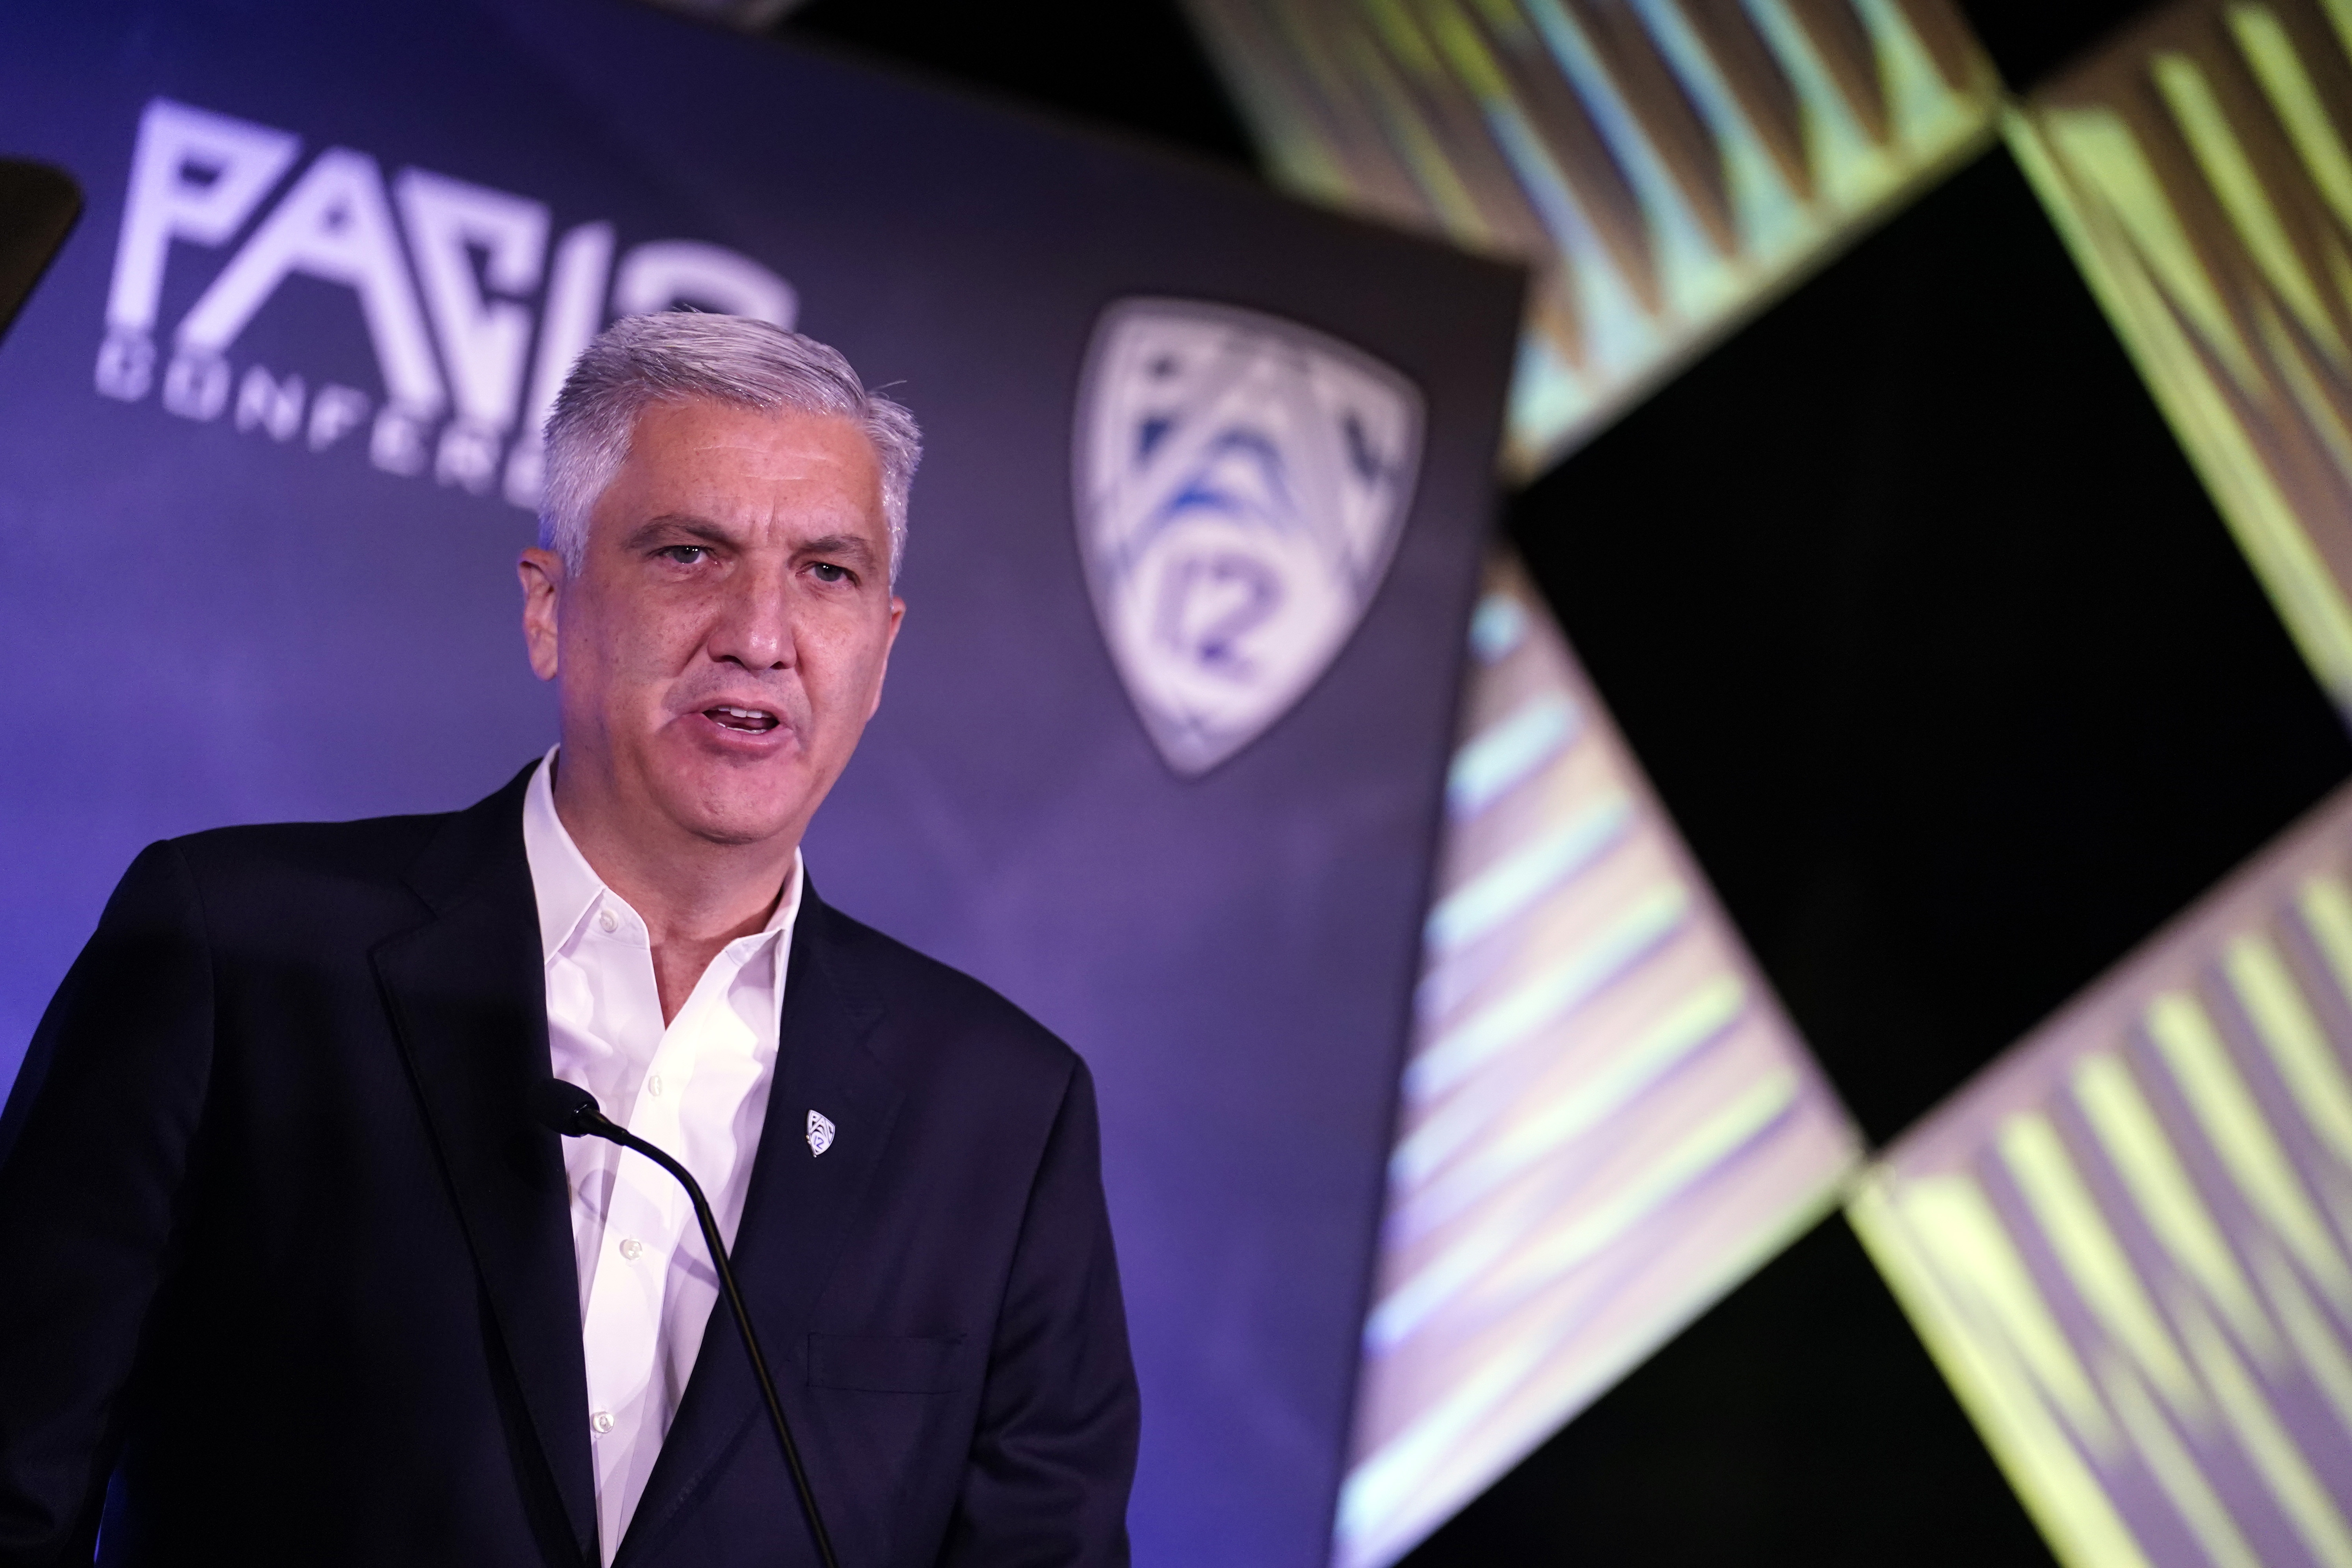 Pac-12 Commissioner George Kliavkoff speaks at Pac-12 Conference football media day, July 27, 2021, in Los Angeles.